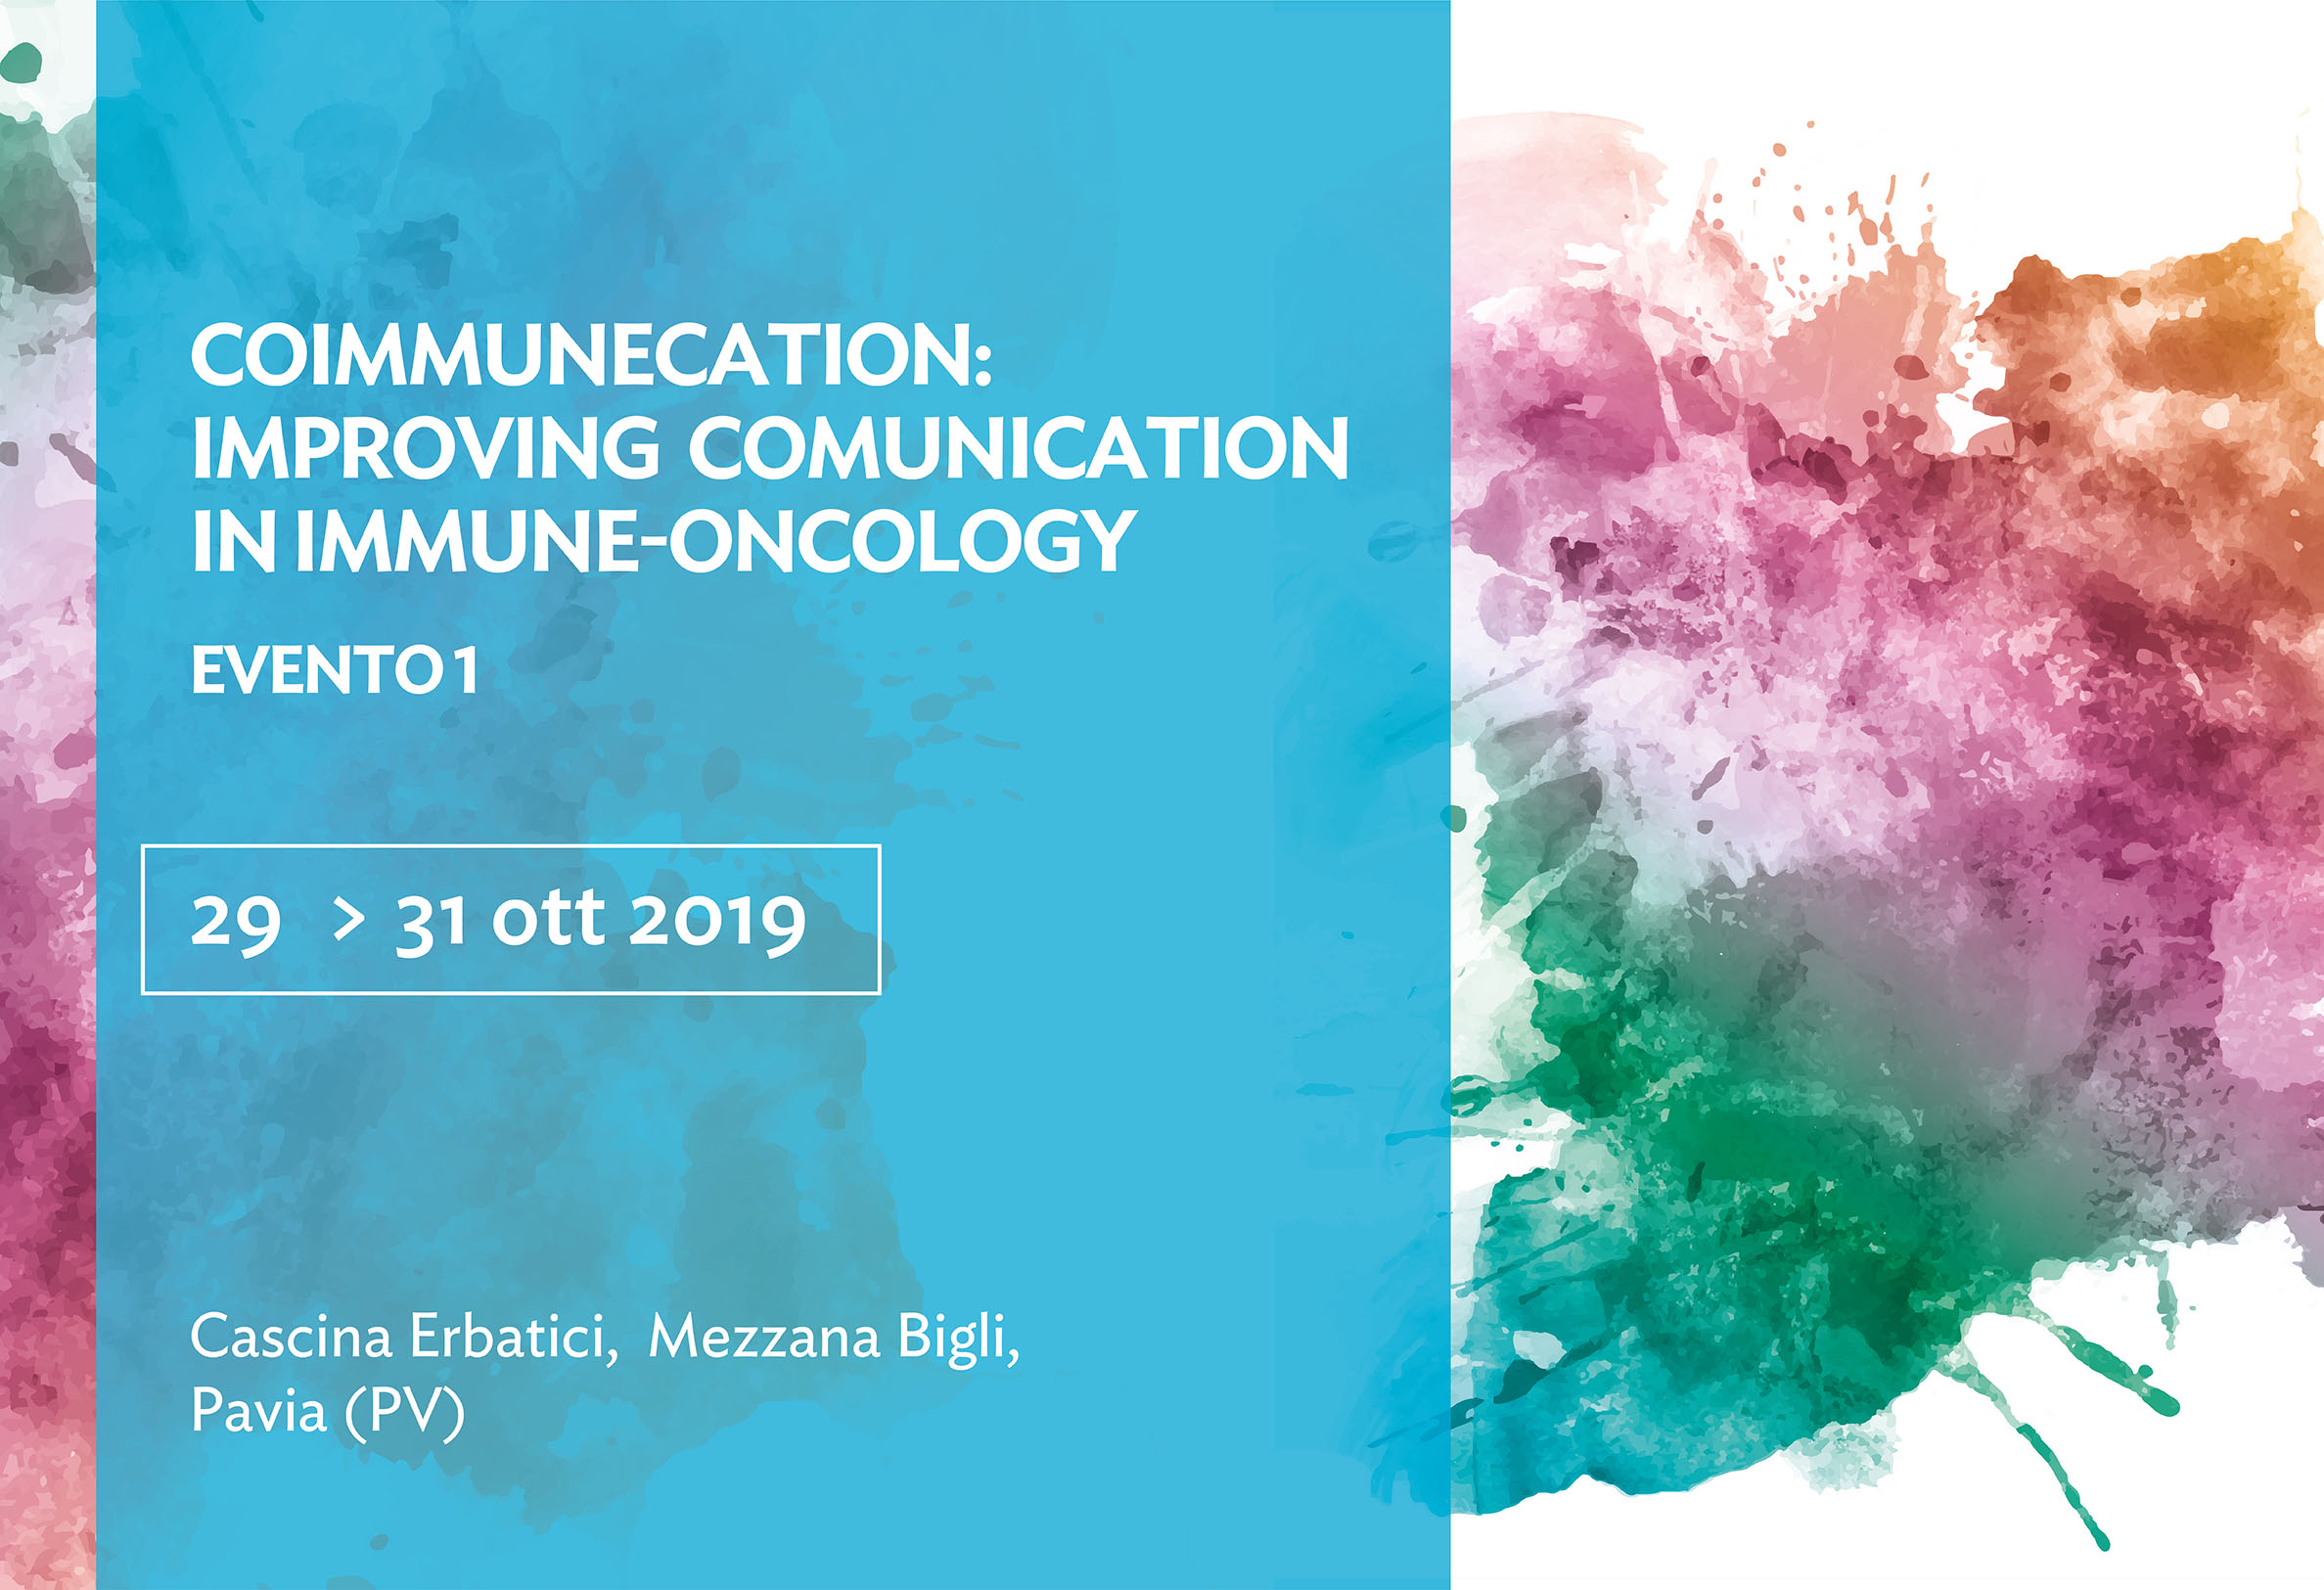 CoImmuneCation: improving comunication in immune-oncology